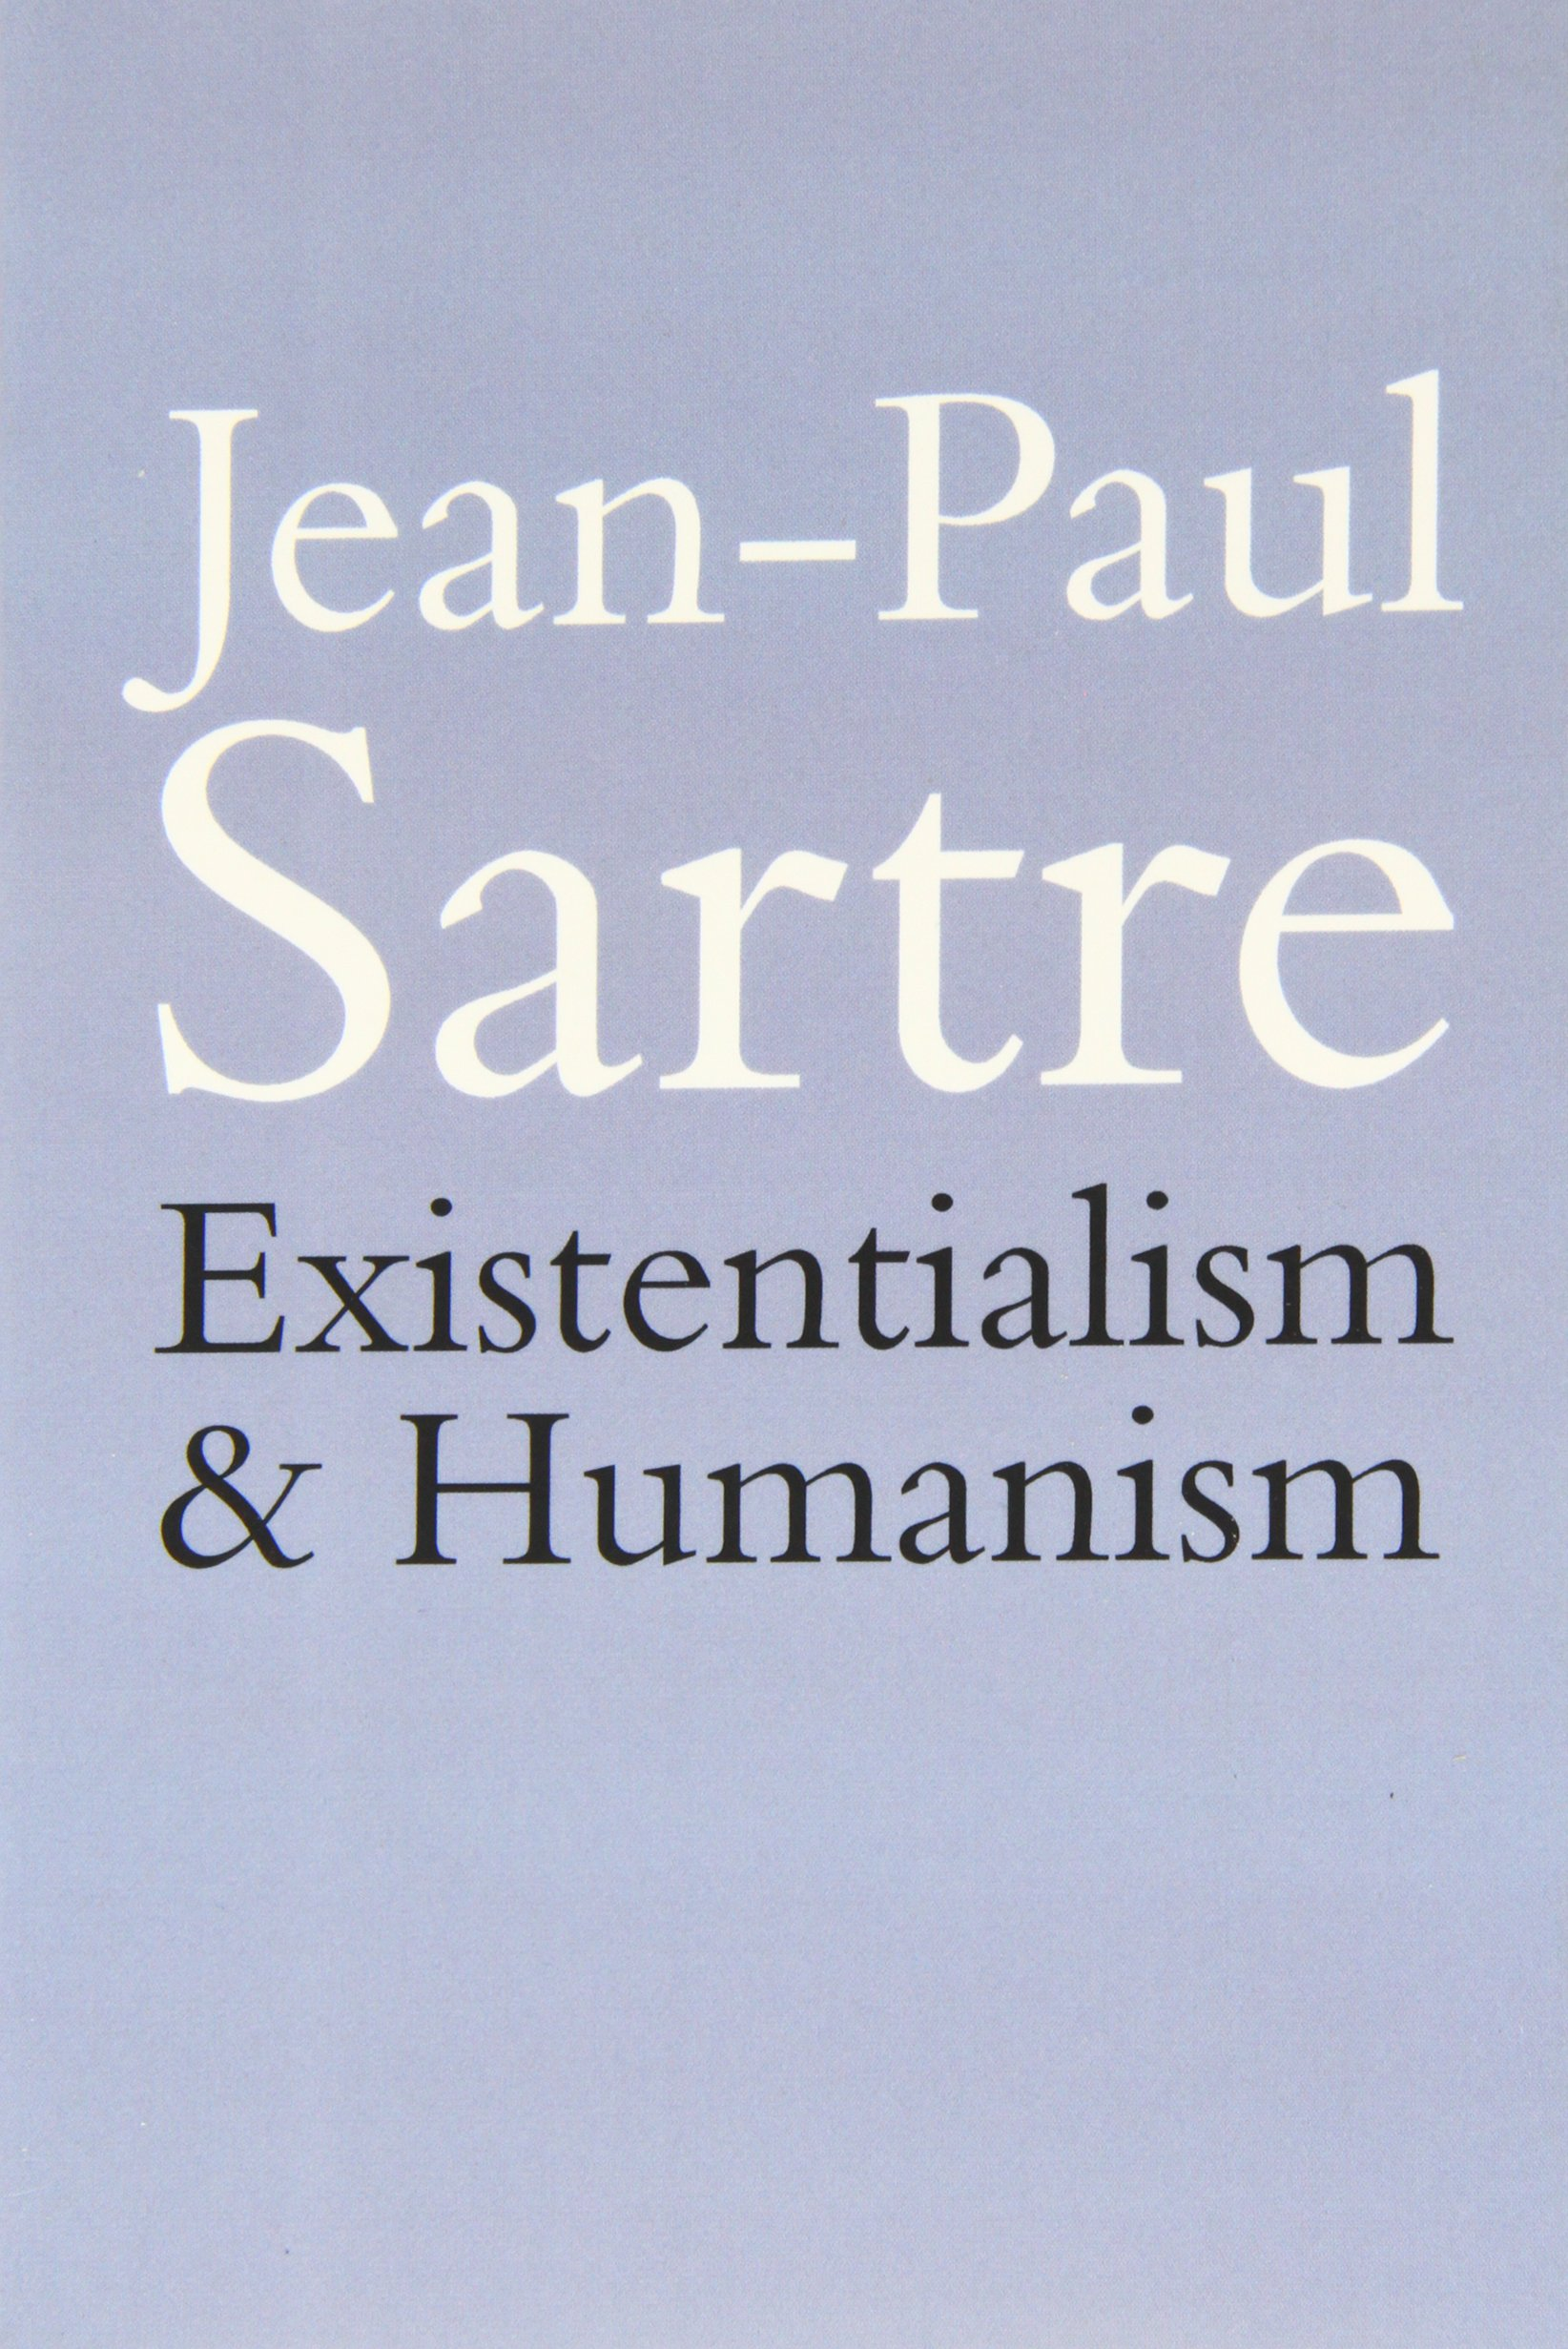 sartre essay sartre essay org sartre essay on stickiness albert  existentialism and humanism amazon co uk jean paul sartre existentialism and humanism amazon co uk jean